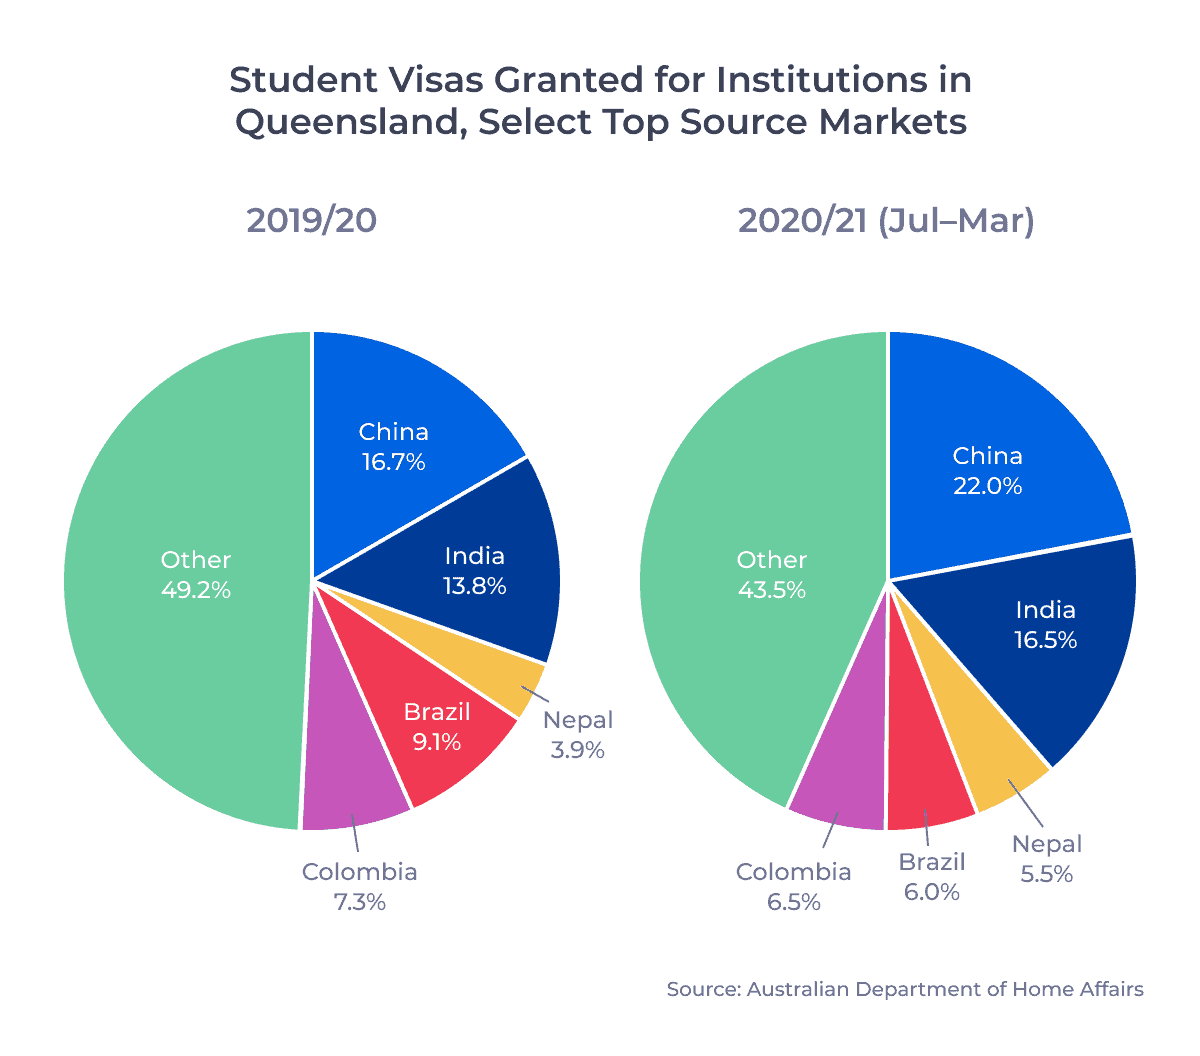 Student Visas Granted for Institutions in Queensland, Select Top Source Markets